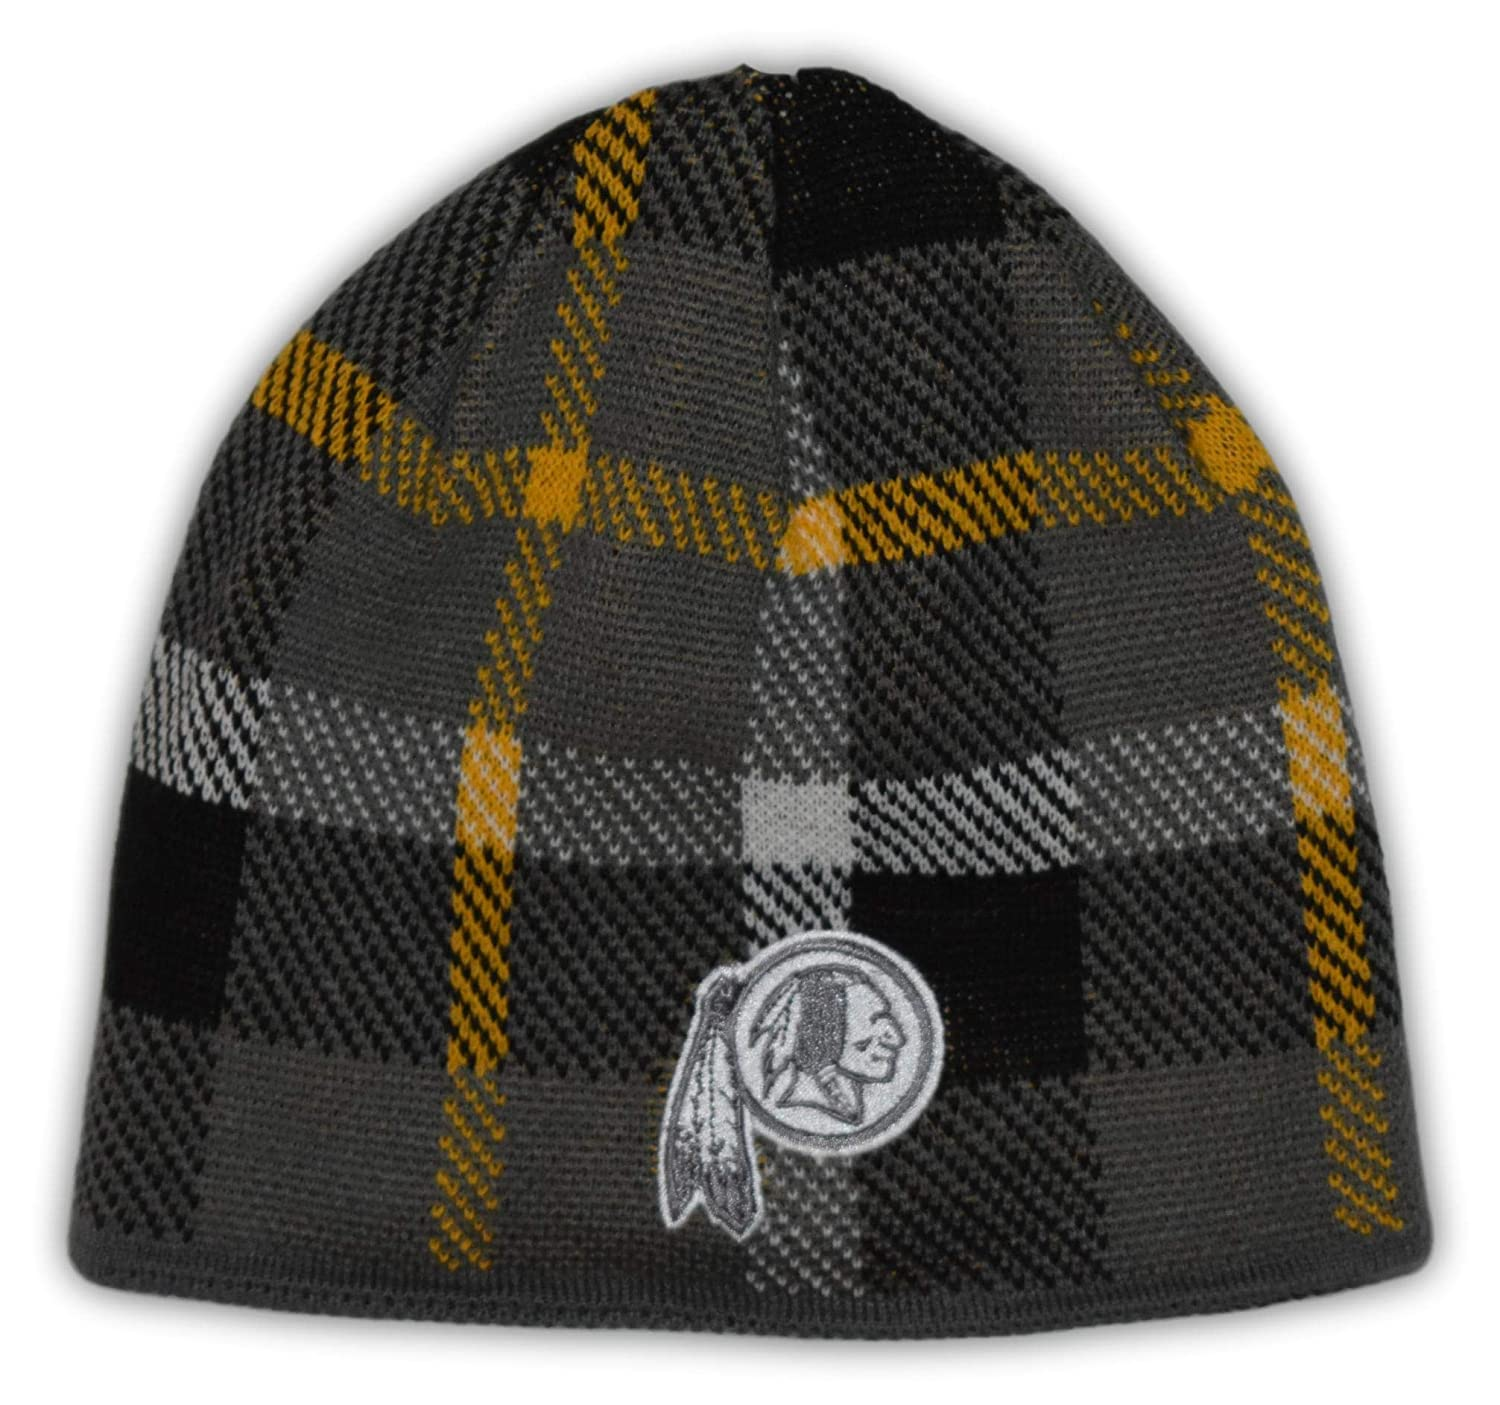 Amazon.com   Reebok Washington Redskins NFL Team Apparel Gray Plaid Knit Beanie  Hat   Sports Fan Knit Caps   Sports   Outdoors c189afa8b85